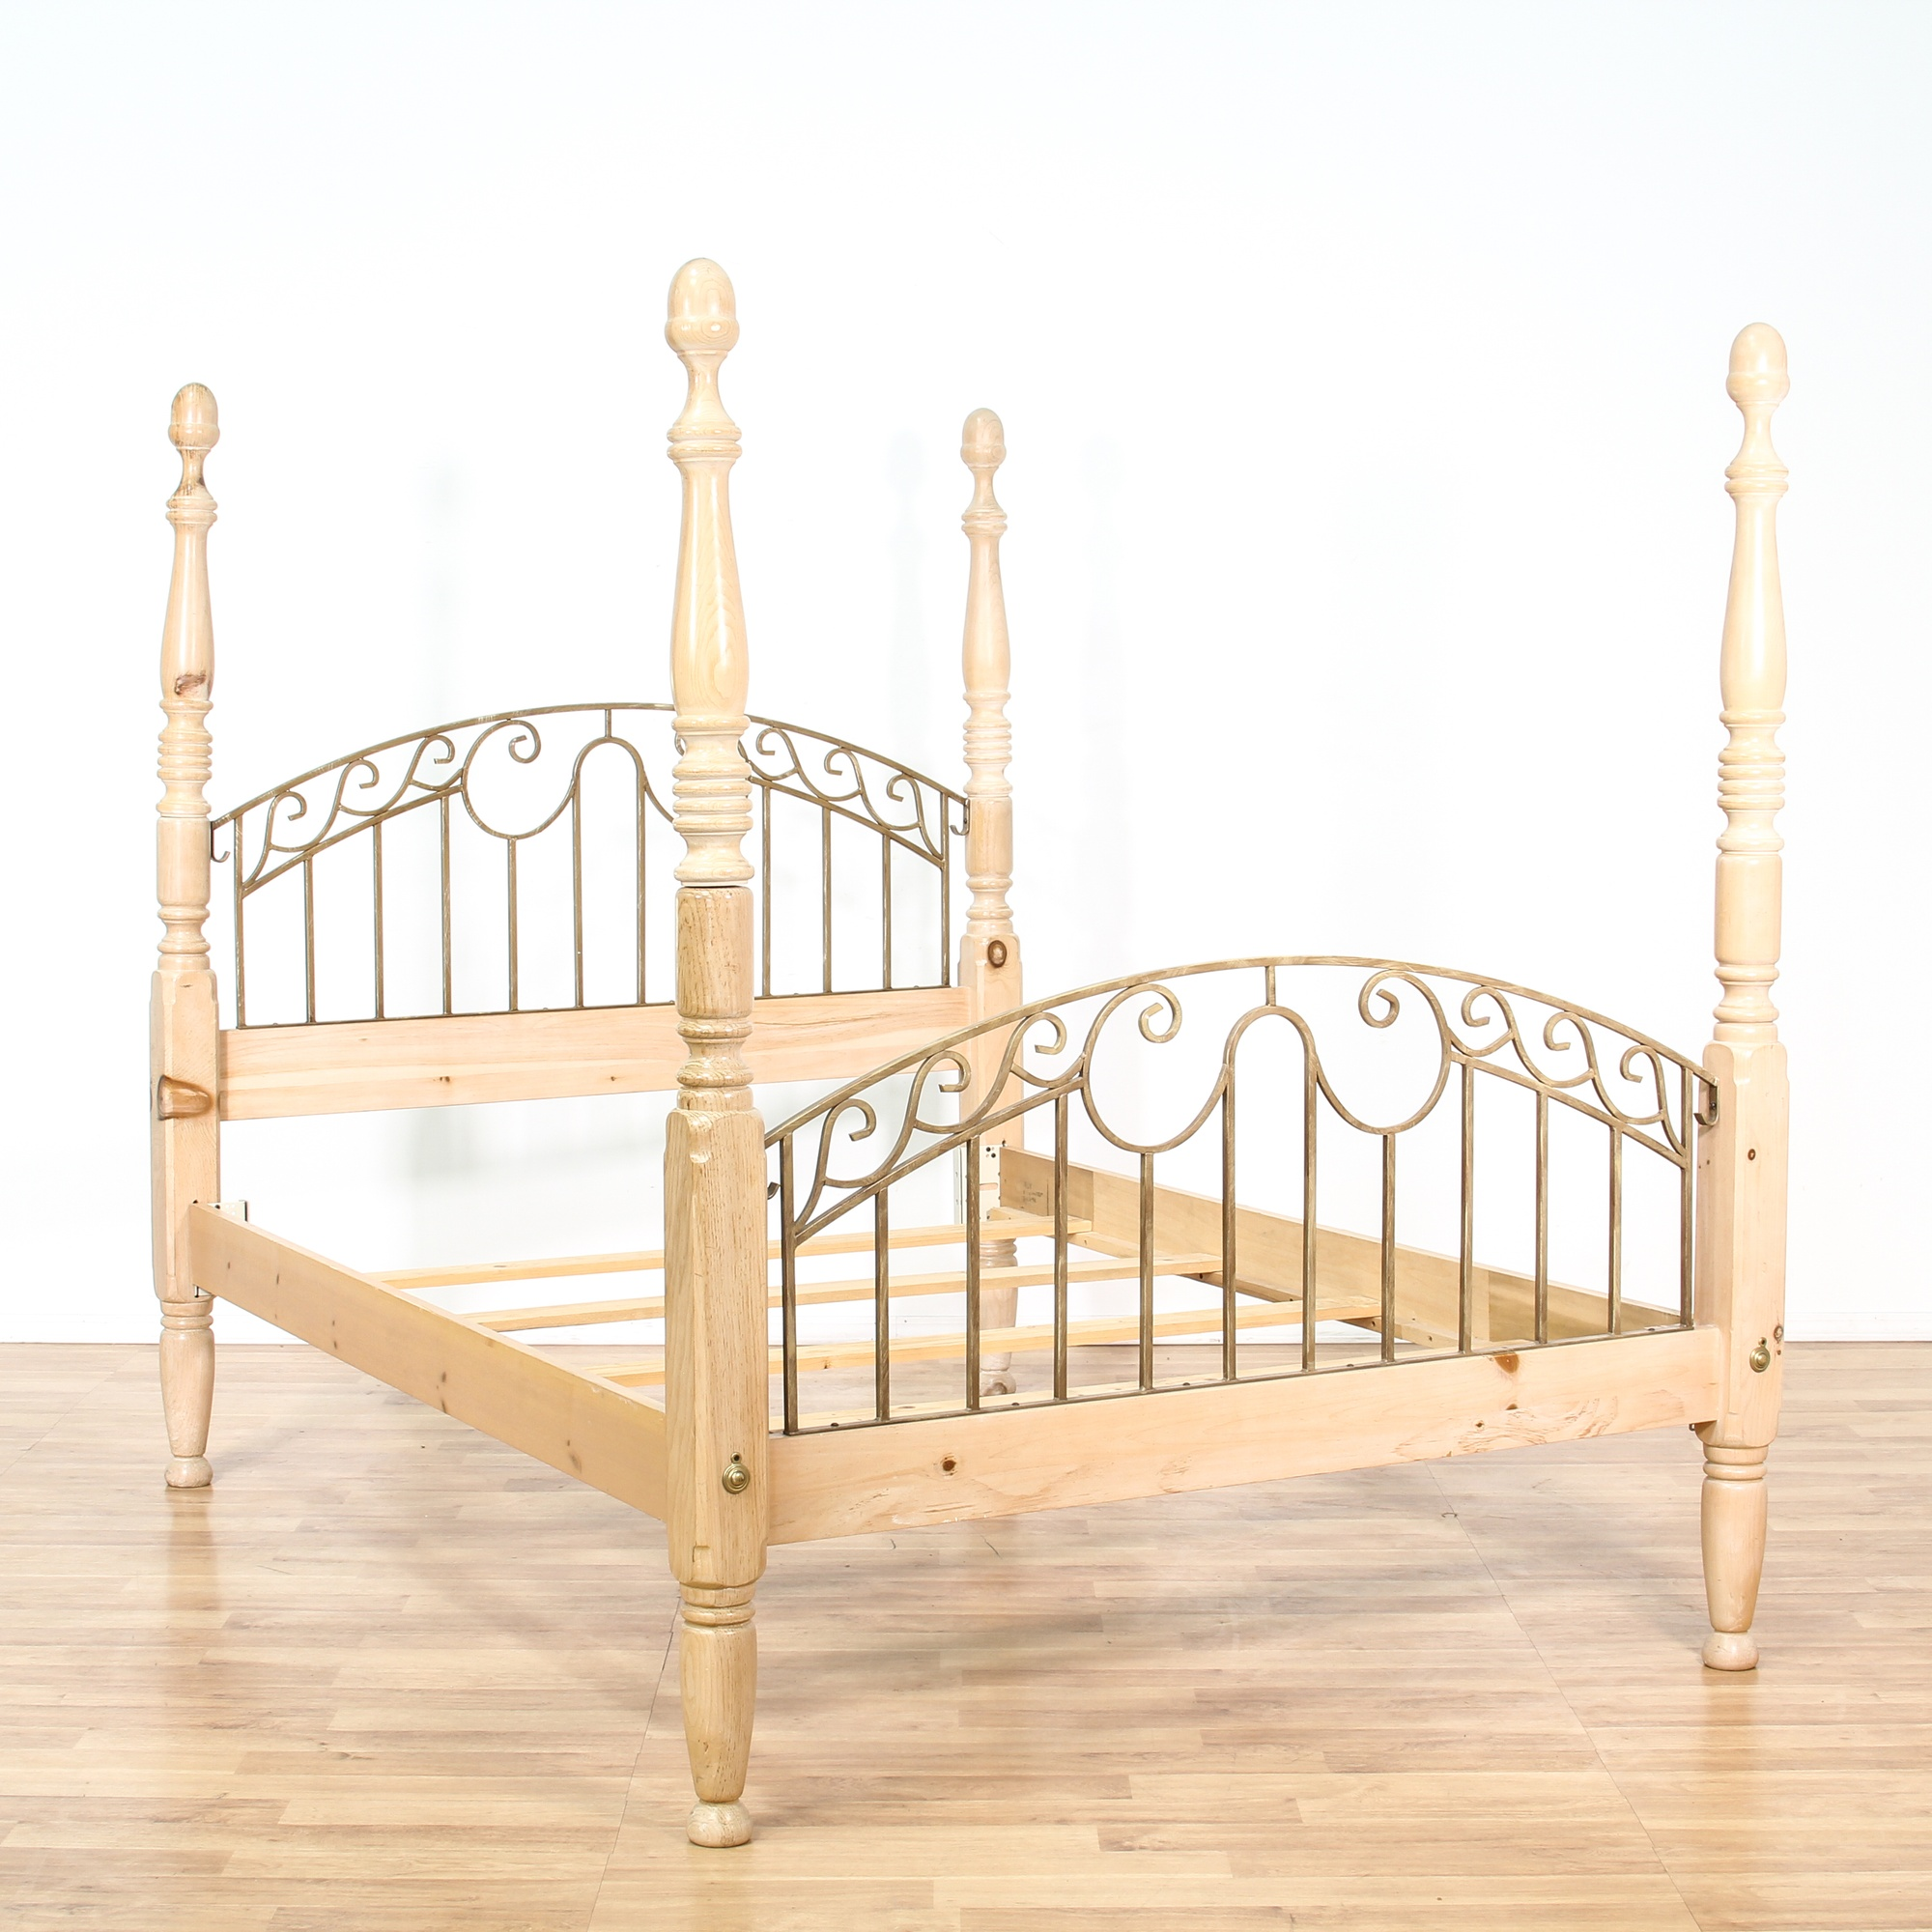 Dating los angeles craigslist queen bed frame